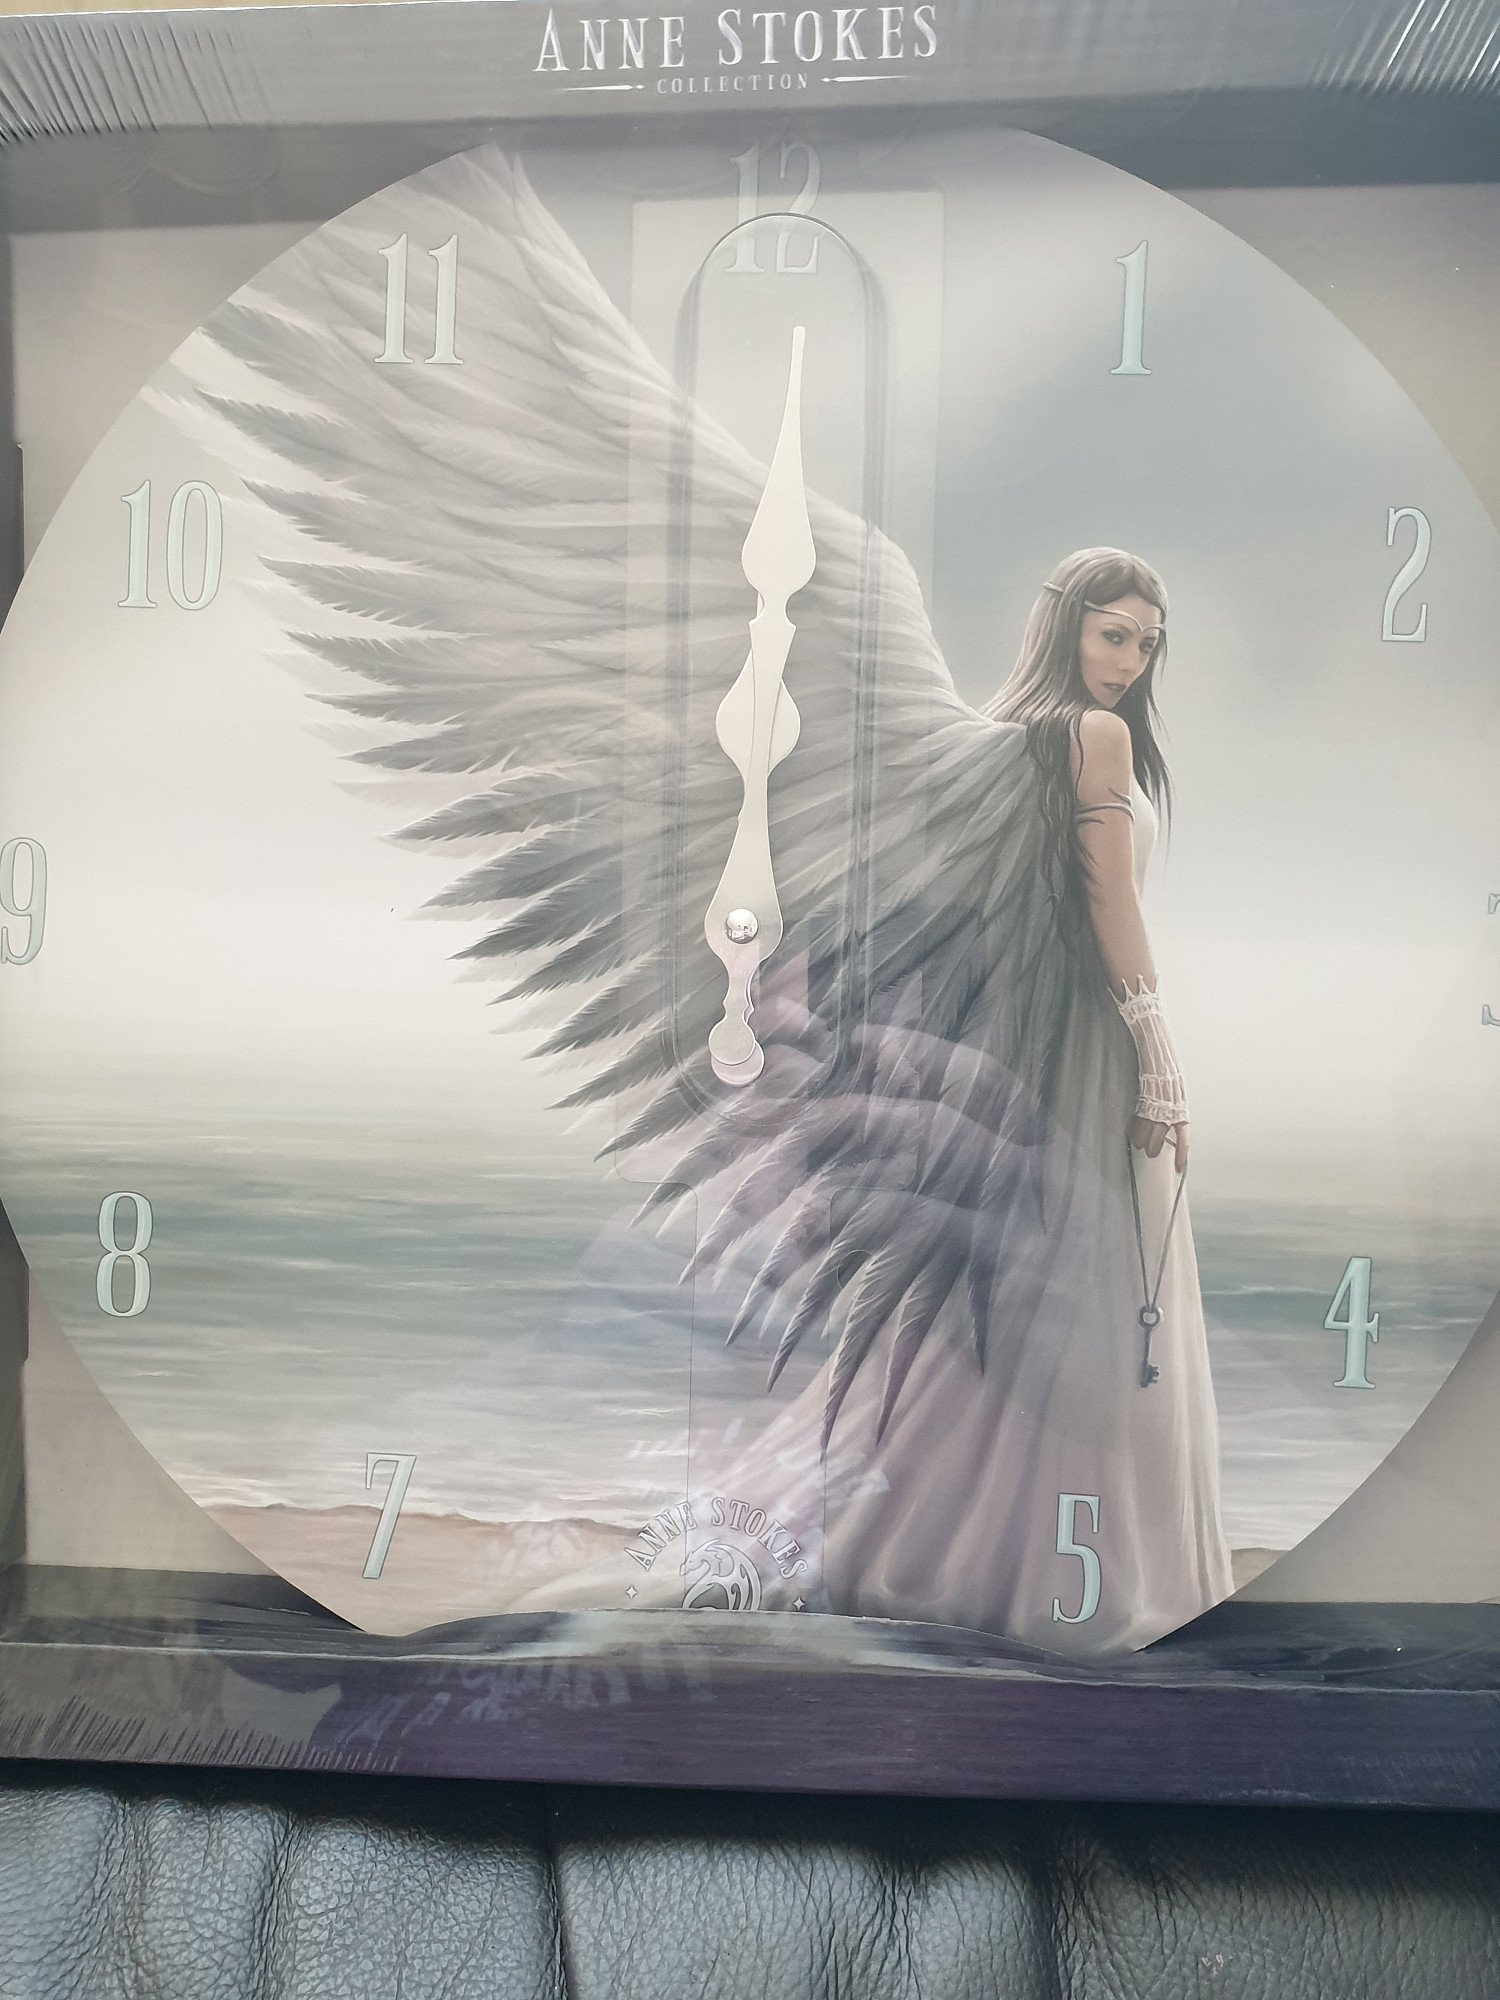 WIN an Anne Stokes Aly Fell Wall Clock!